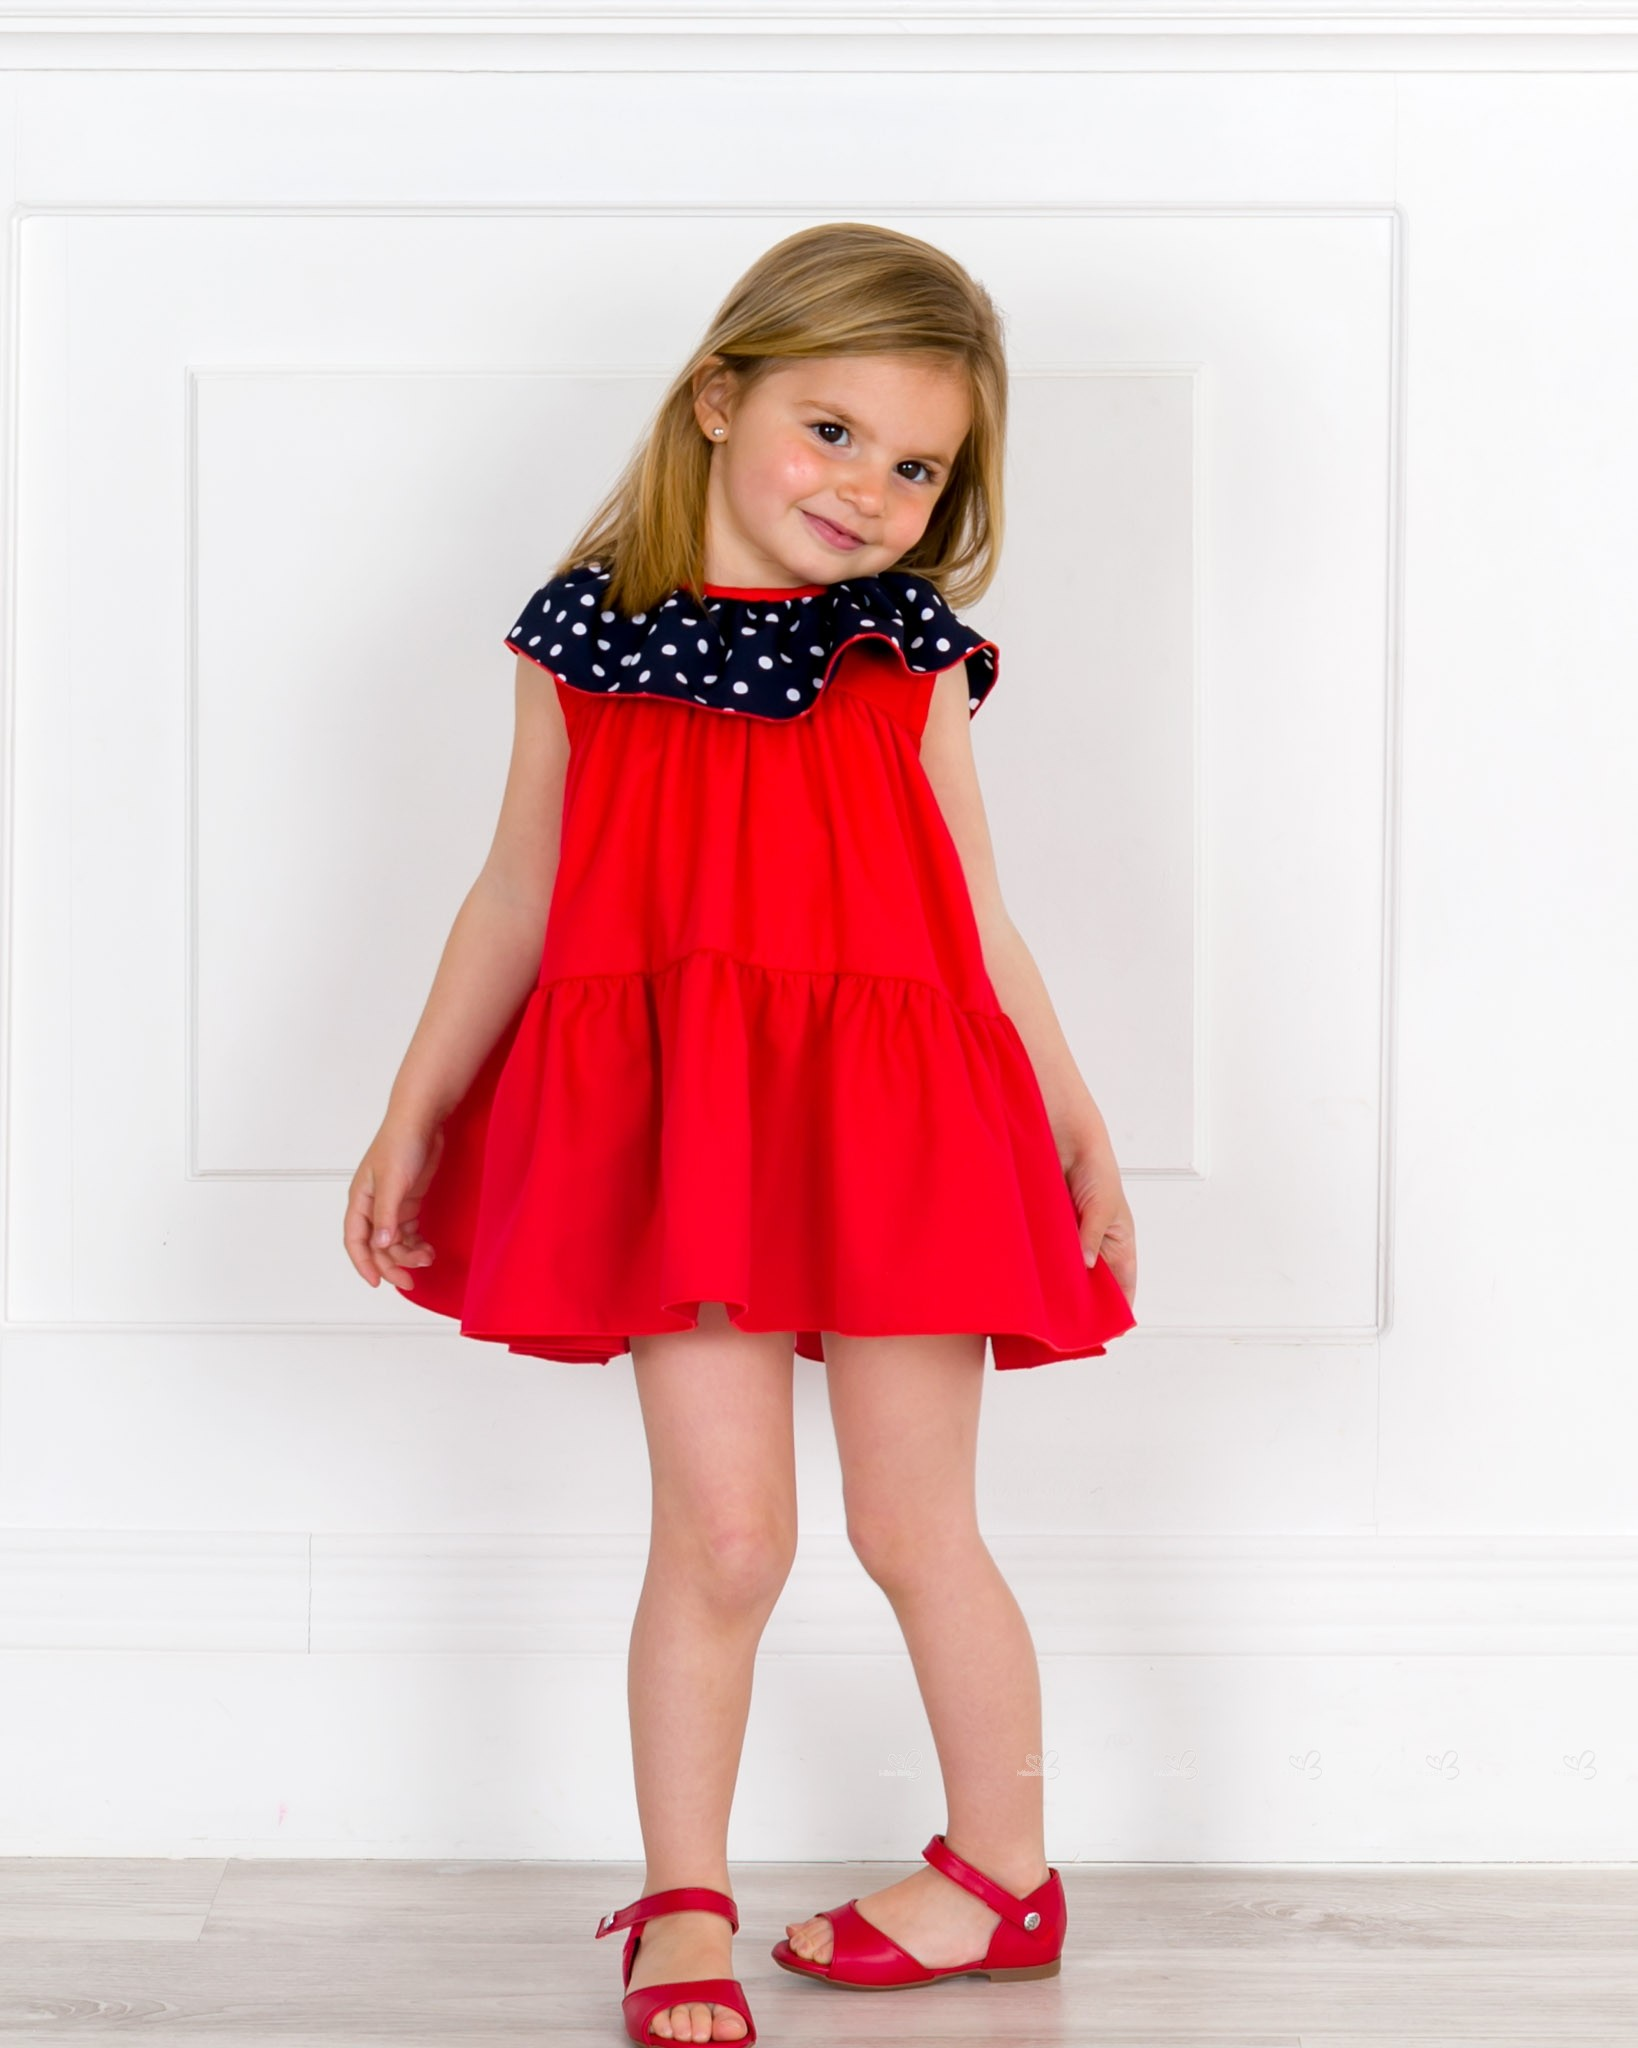 cb173239c95b98 Girls Red Dress & Navy Blue Polka Dot Collar Ruffle & Red Leather ...